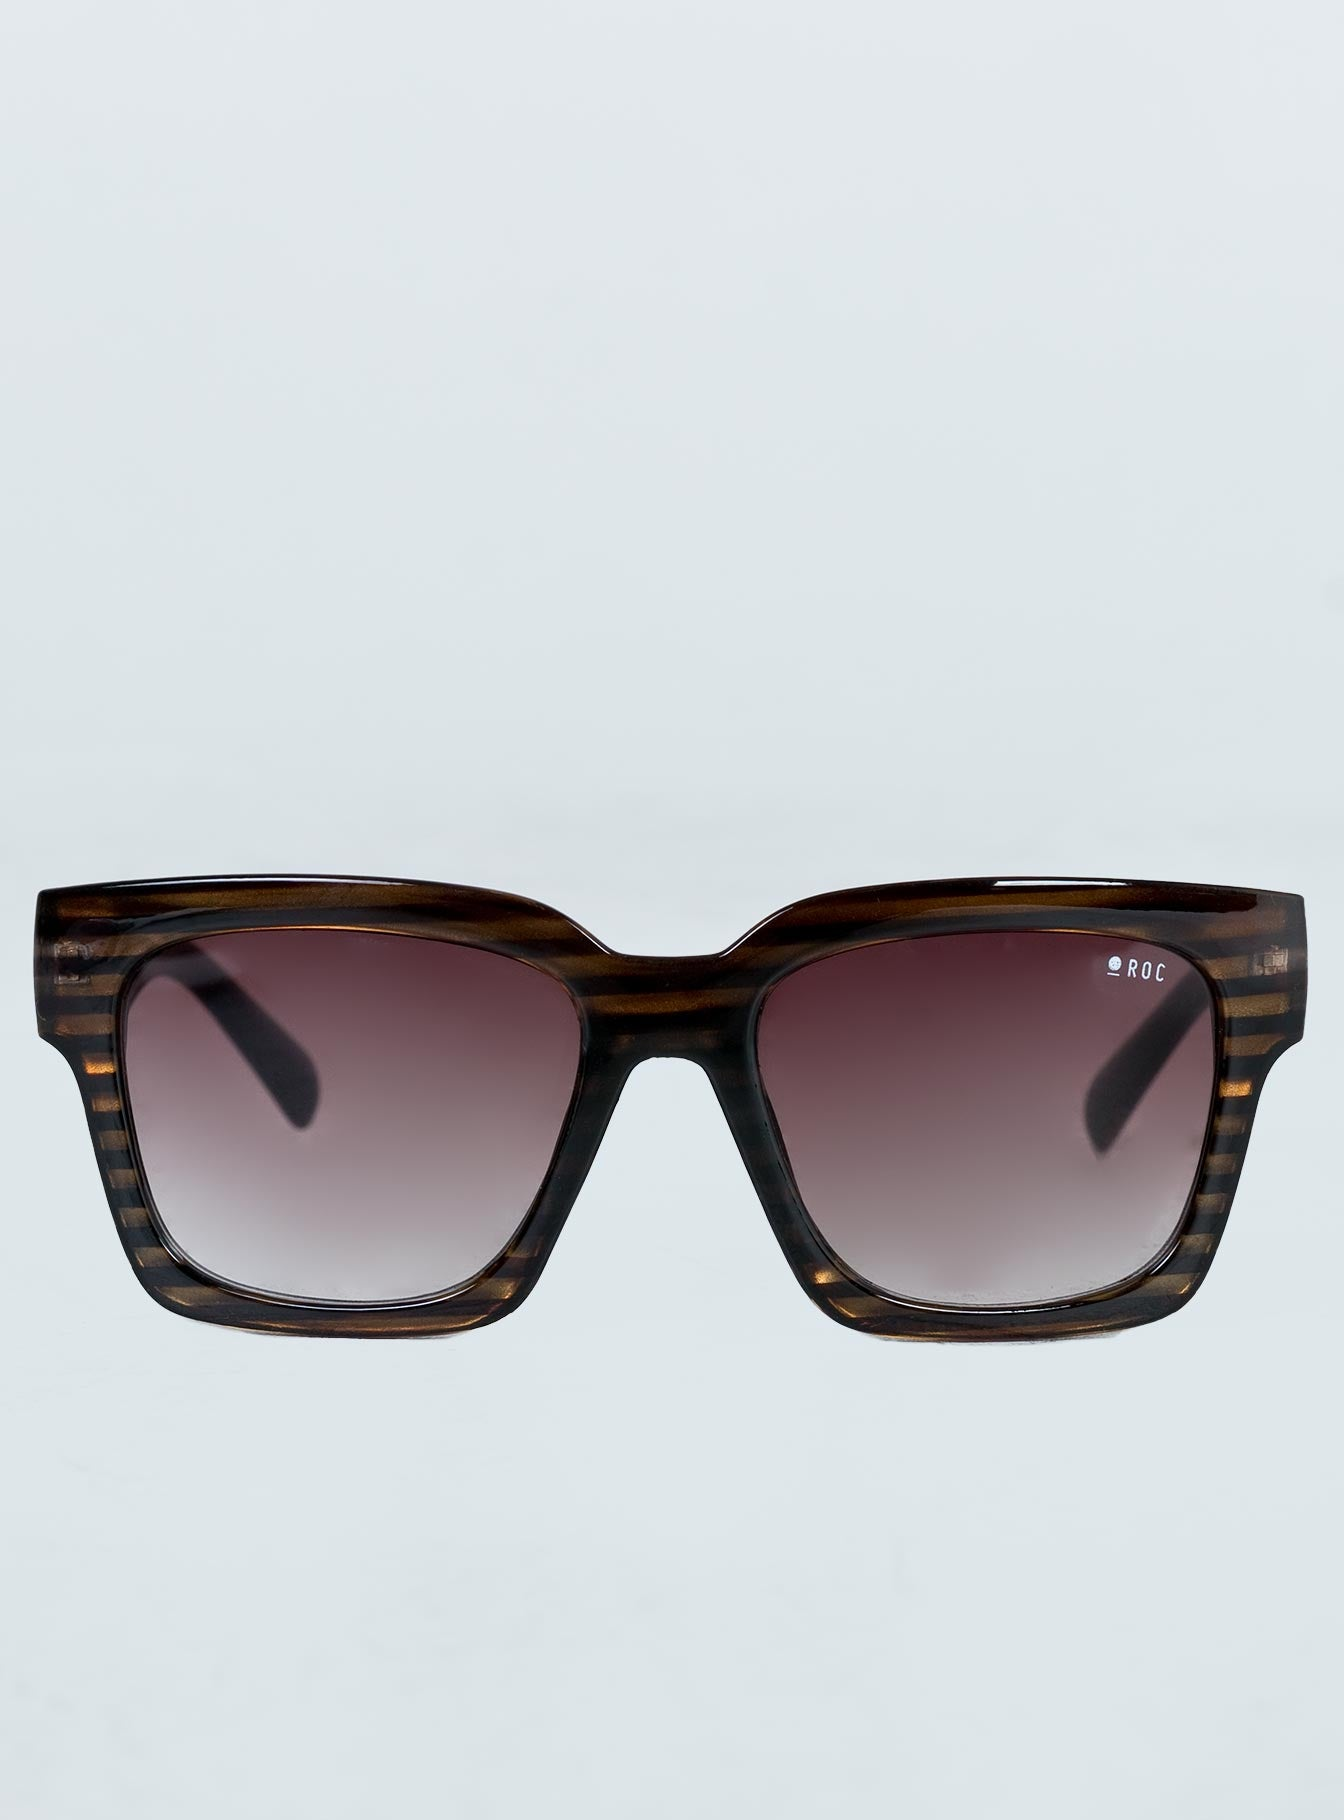 Duchess Sunglasses